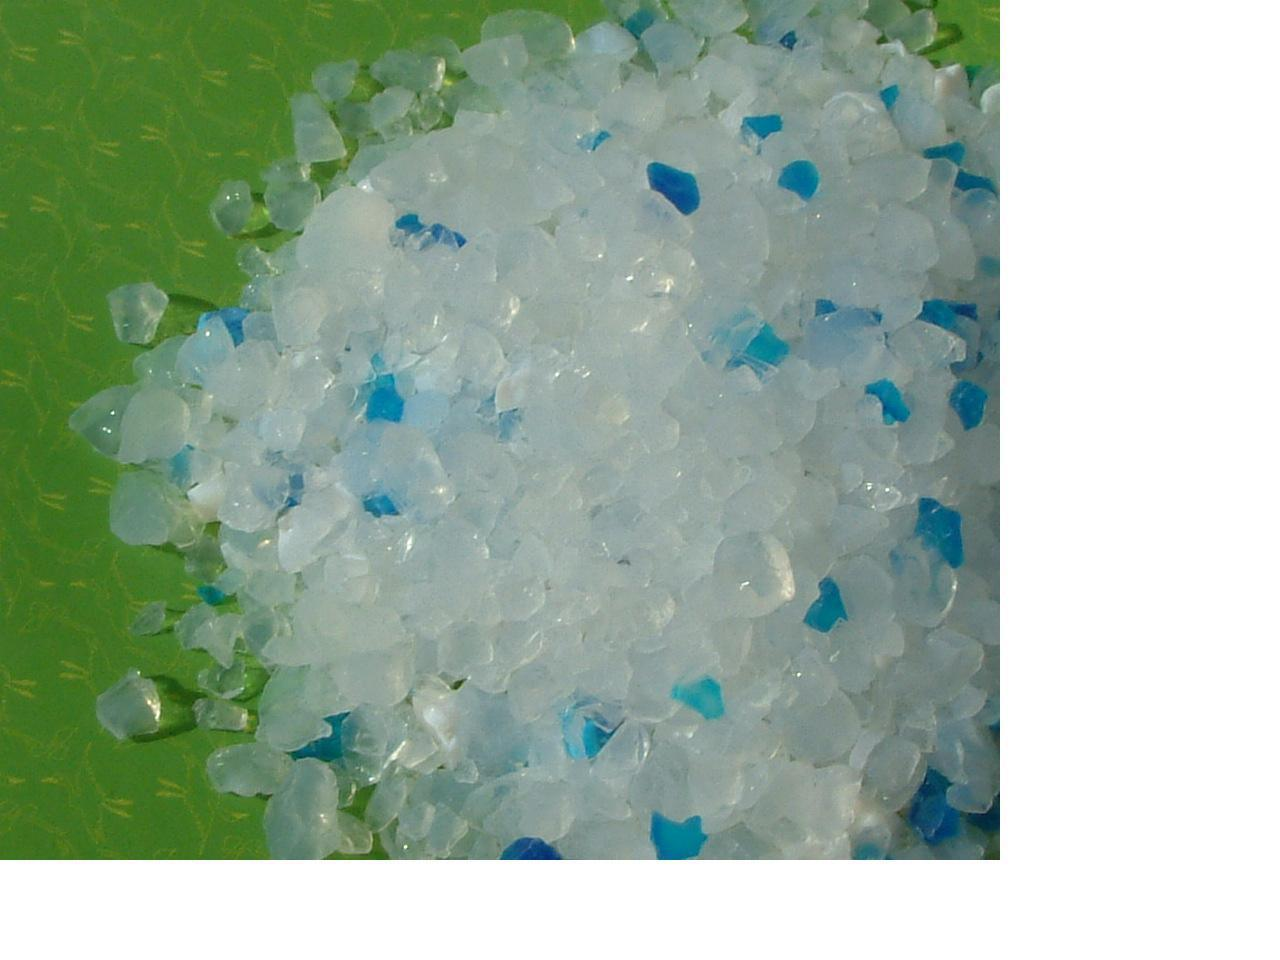 2-8mm Crystal Colored Cat Litter Silica Gel